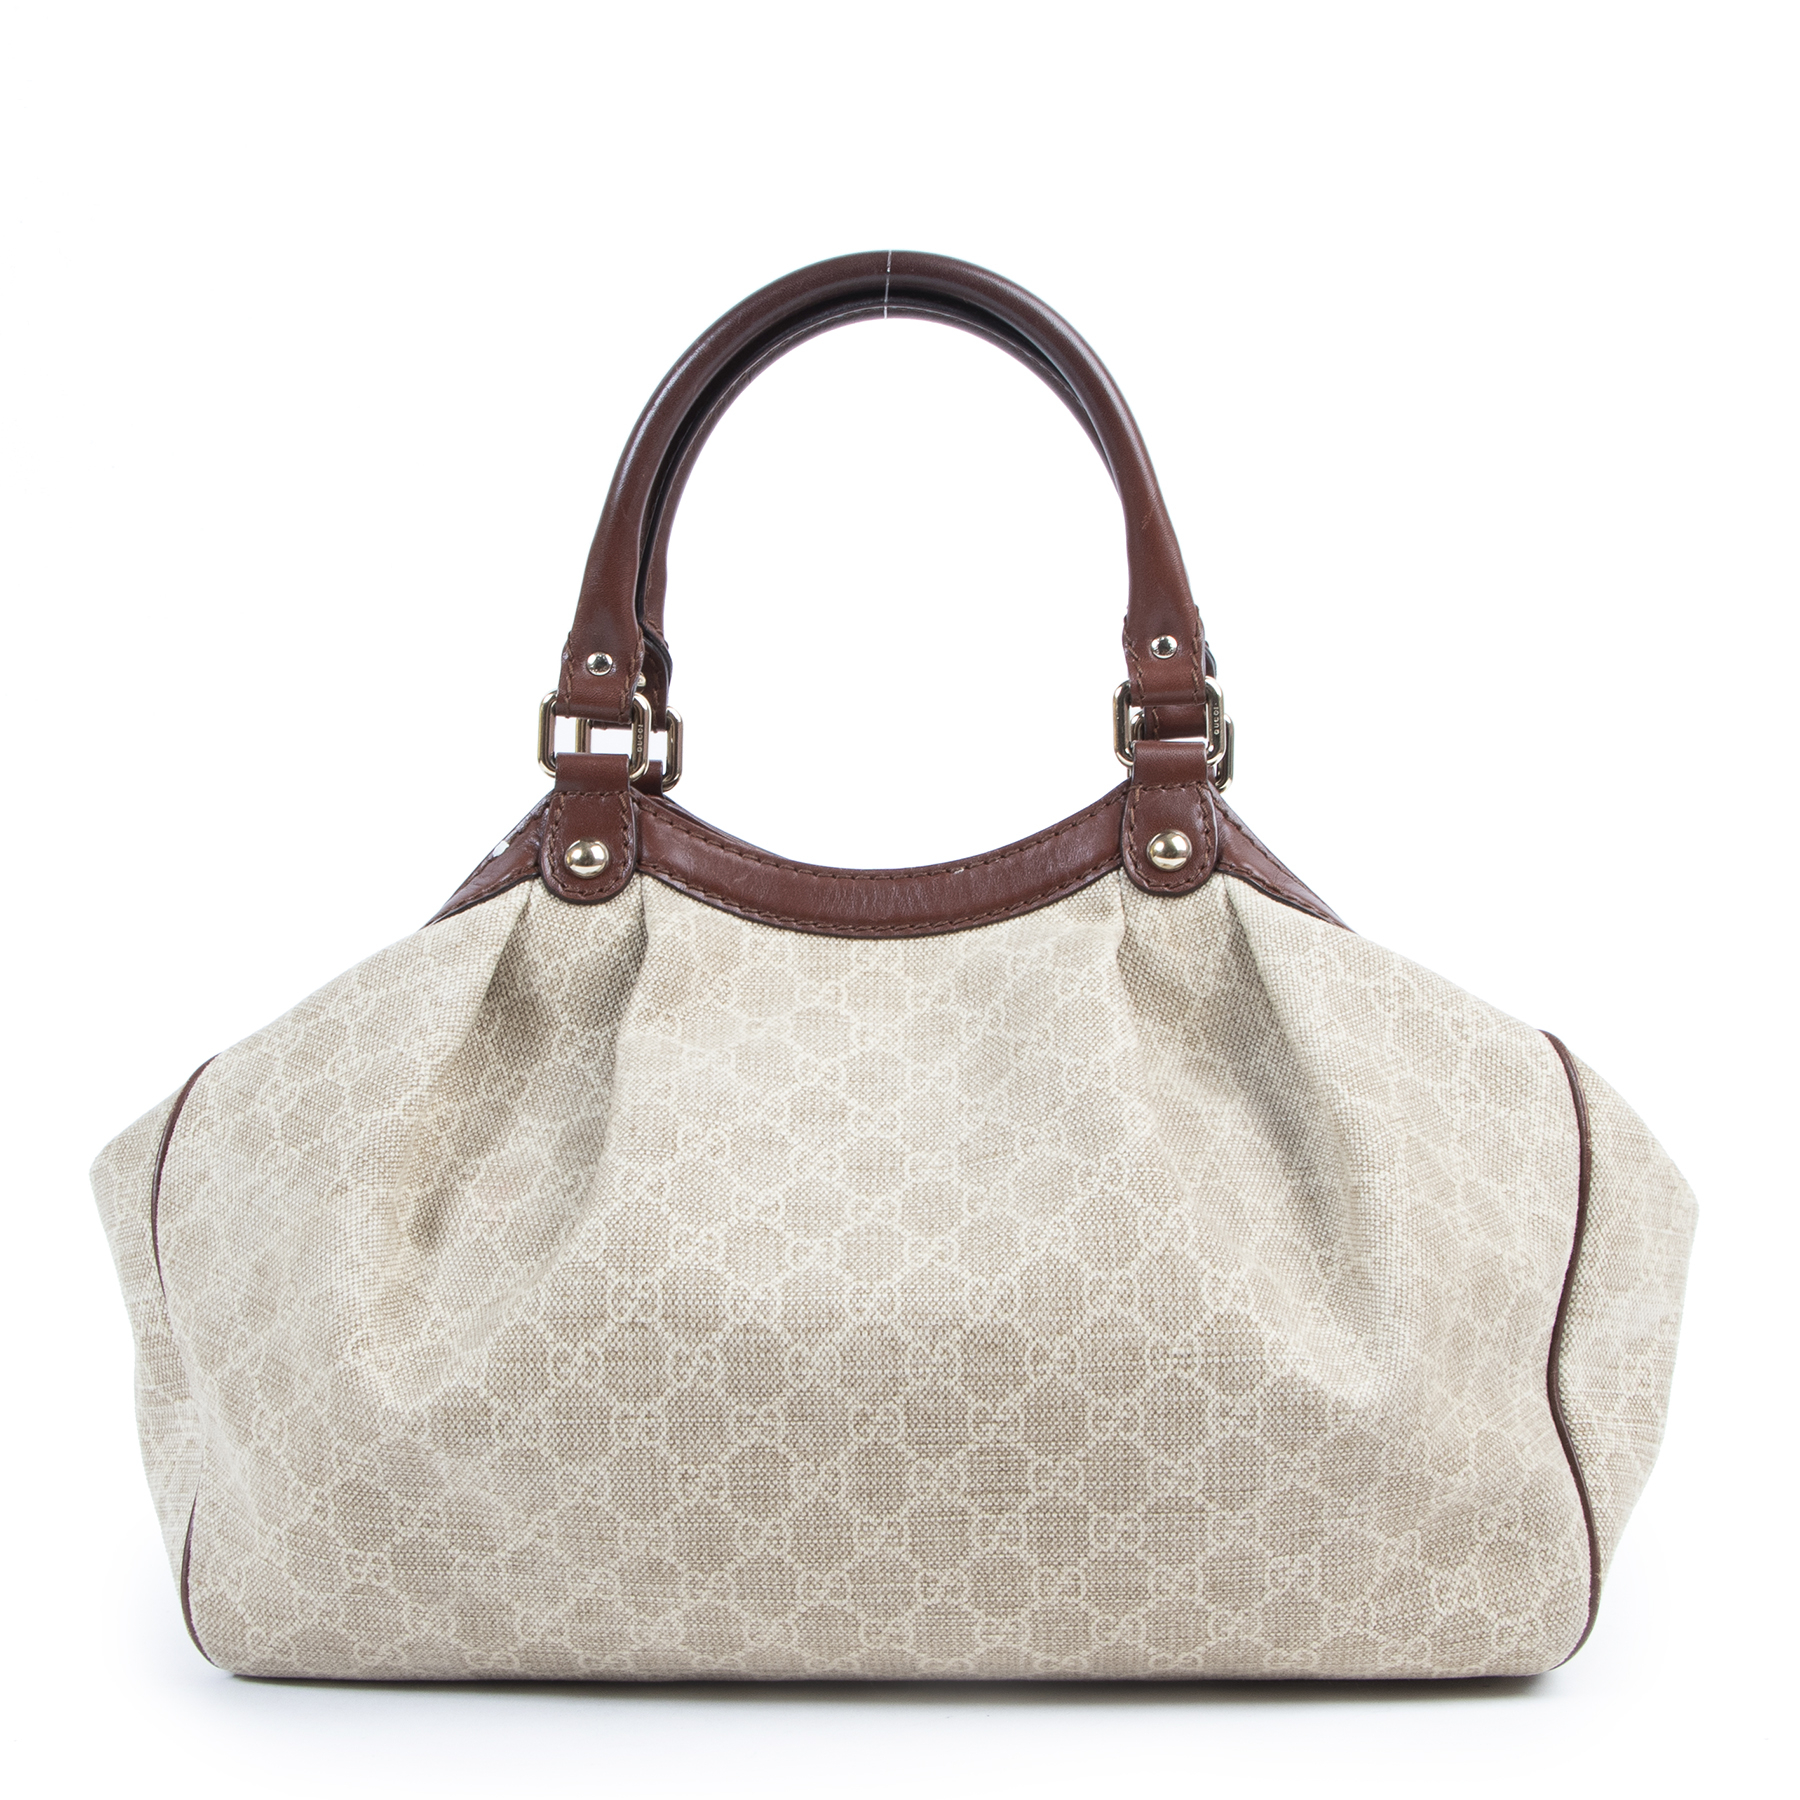 Authentic secondhand Gucci Beige GG Monogram Canvas Shoulder Bag designer bags fashion luxury vintage webshop safe secure online shopping